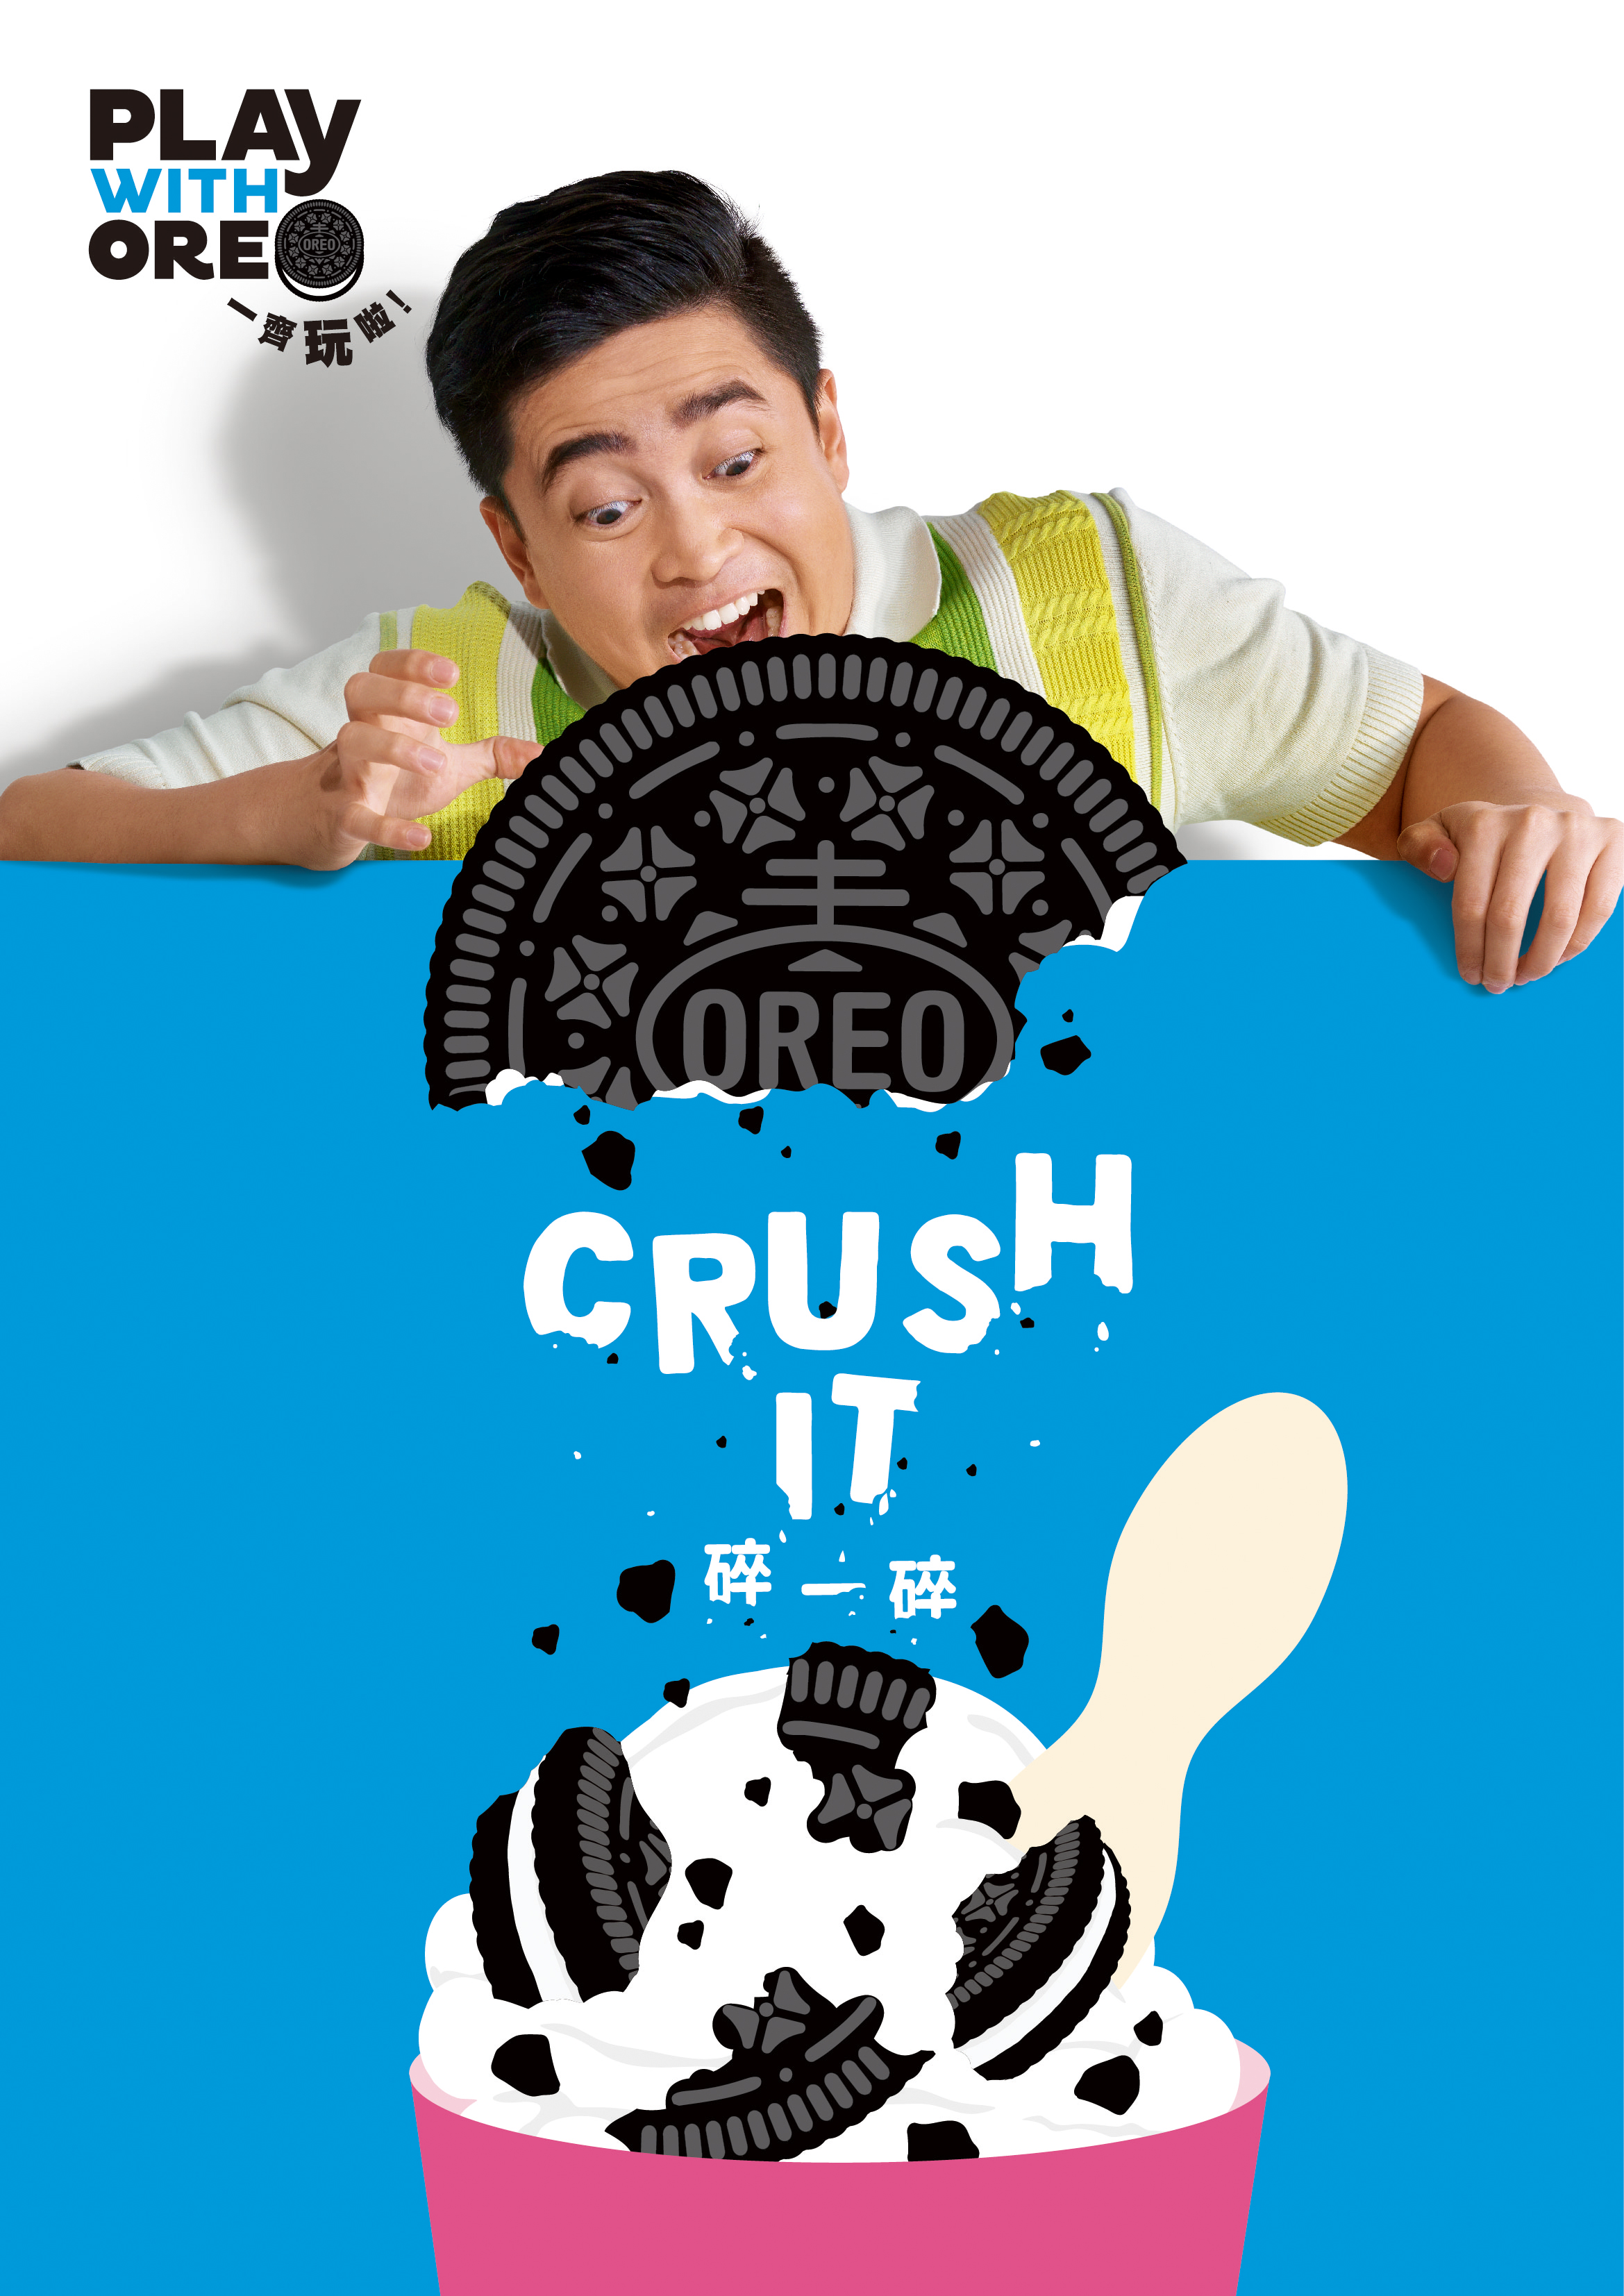 Play With Patterns Prints And Lots Of Accessories For: Oreo's Campaign Shows More Play With Its Cookies